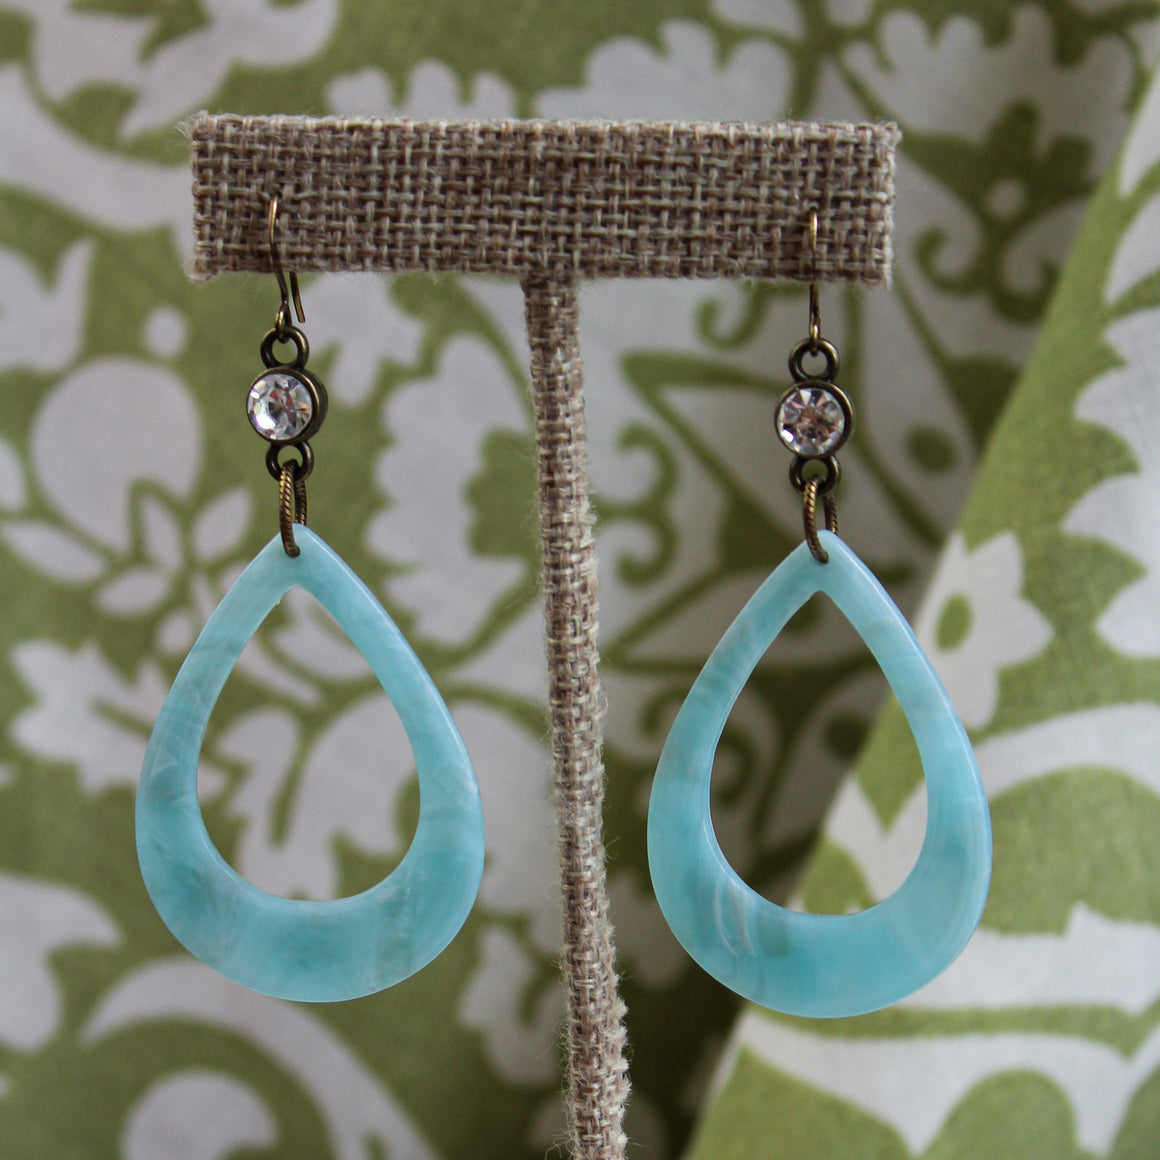 Acrylic and Crystal Teardrop Earrings